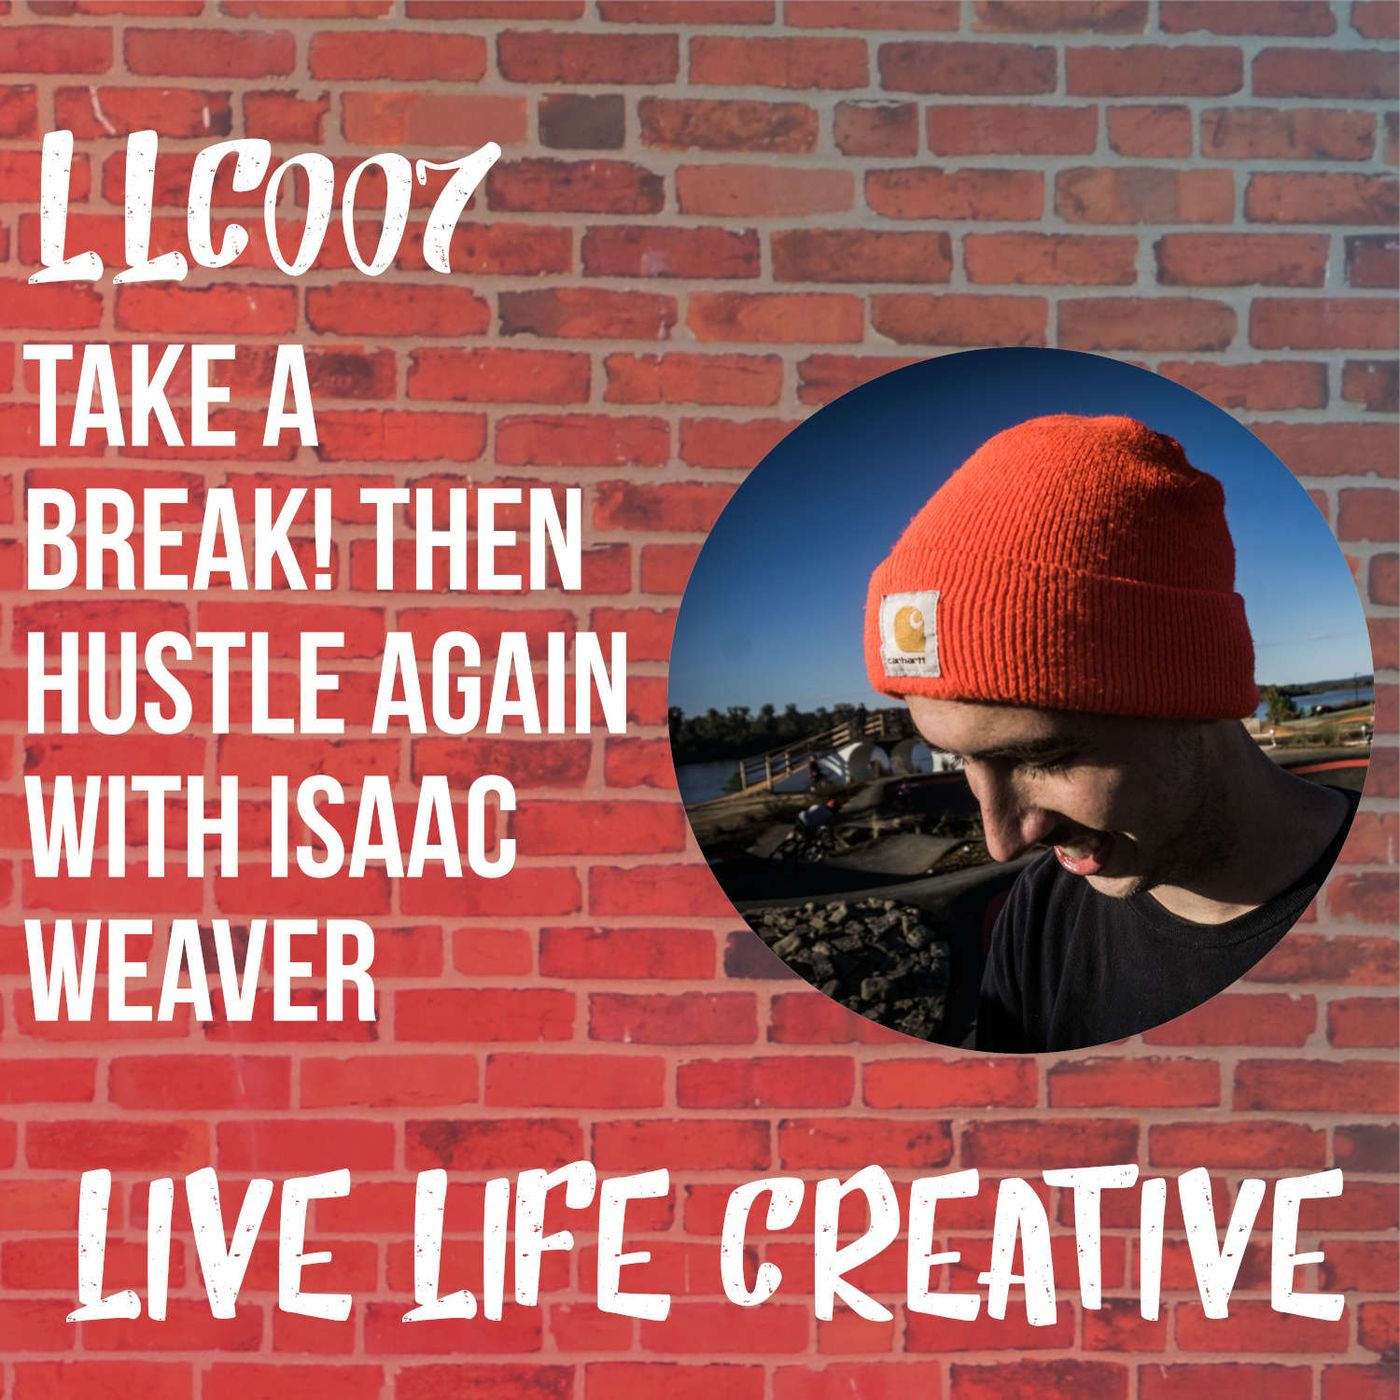 Take a Break! Then Create Again with Isaac Weaver